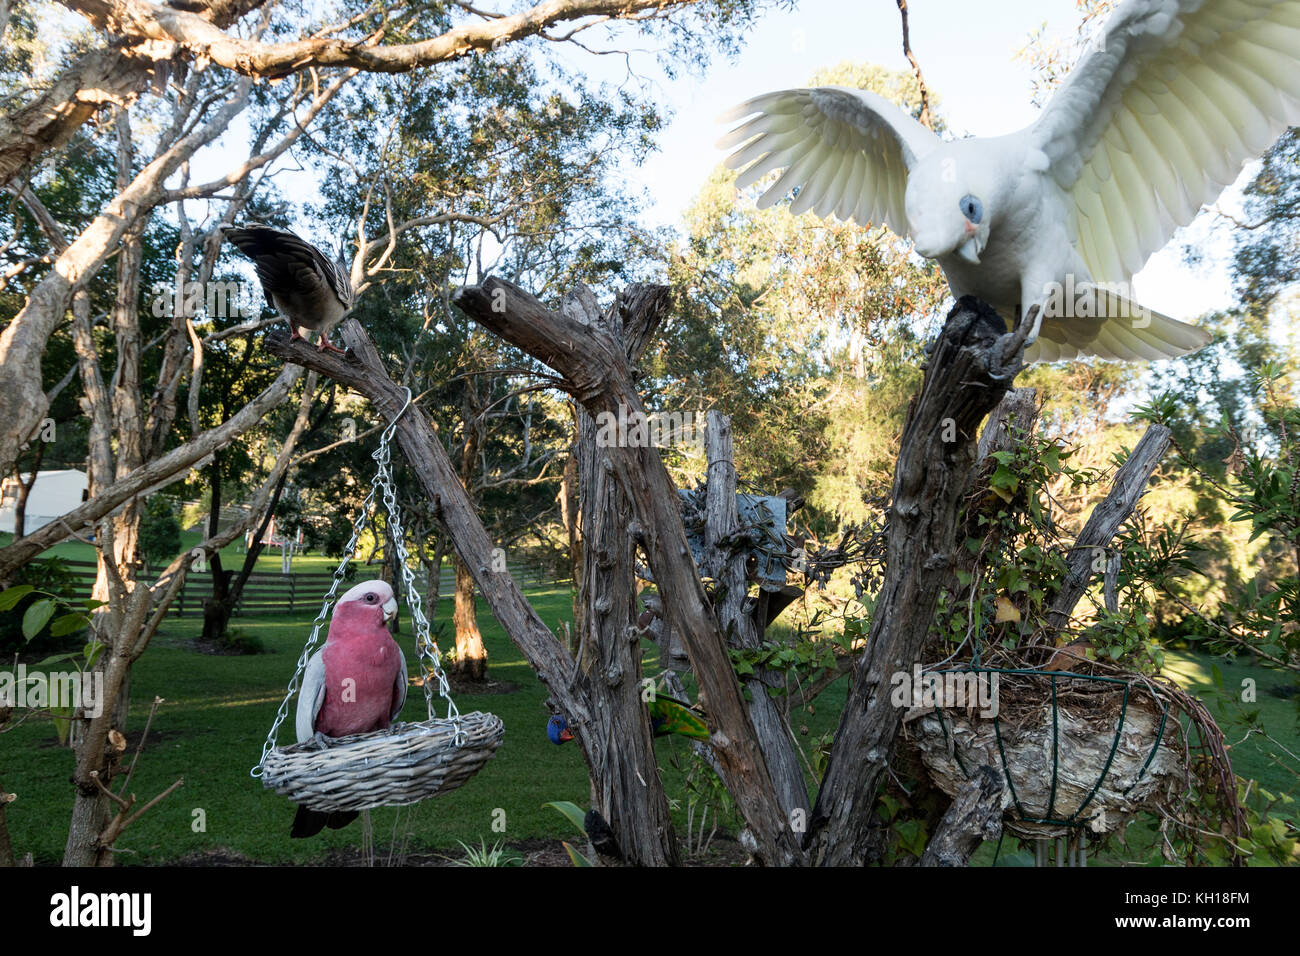 A Galah feeding whilst a Little Corella just landed on a tree stump in a residential garden on the Sunshine Coast, - Stock Image